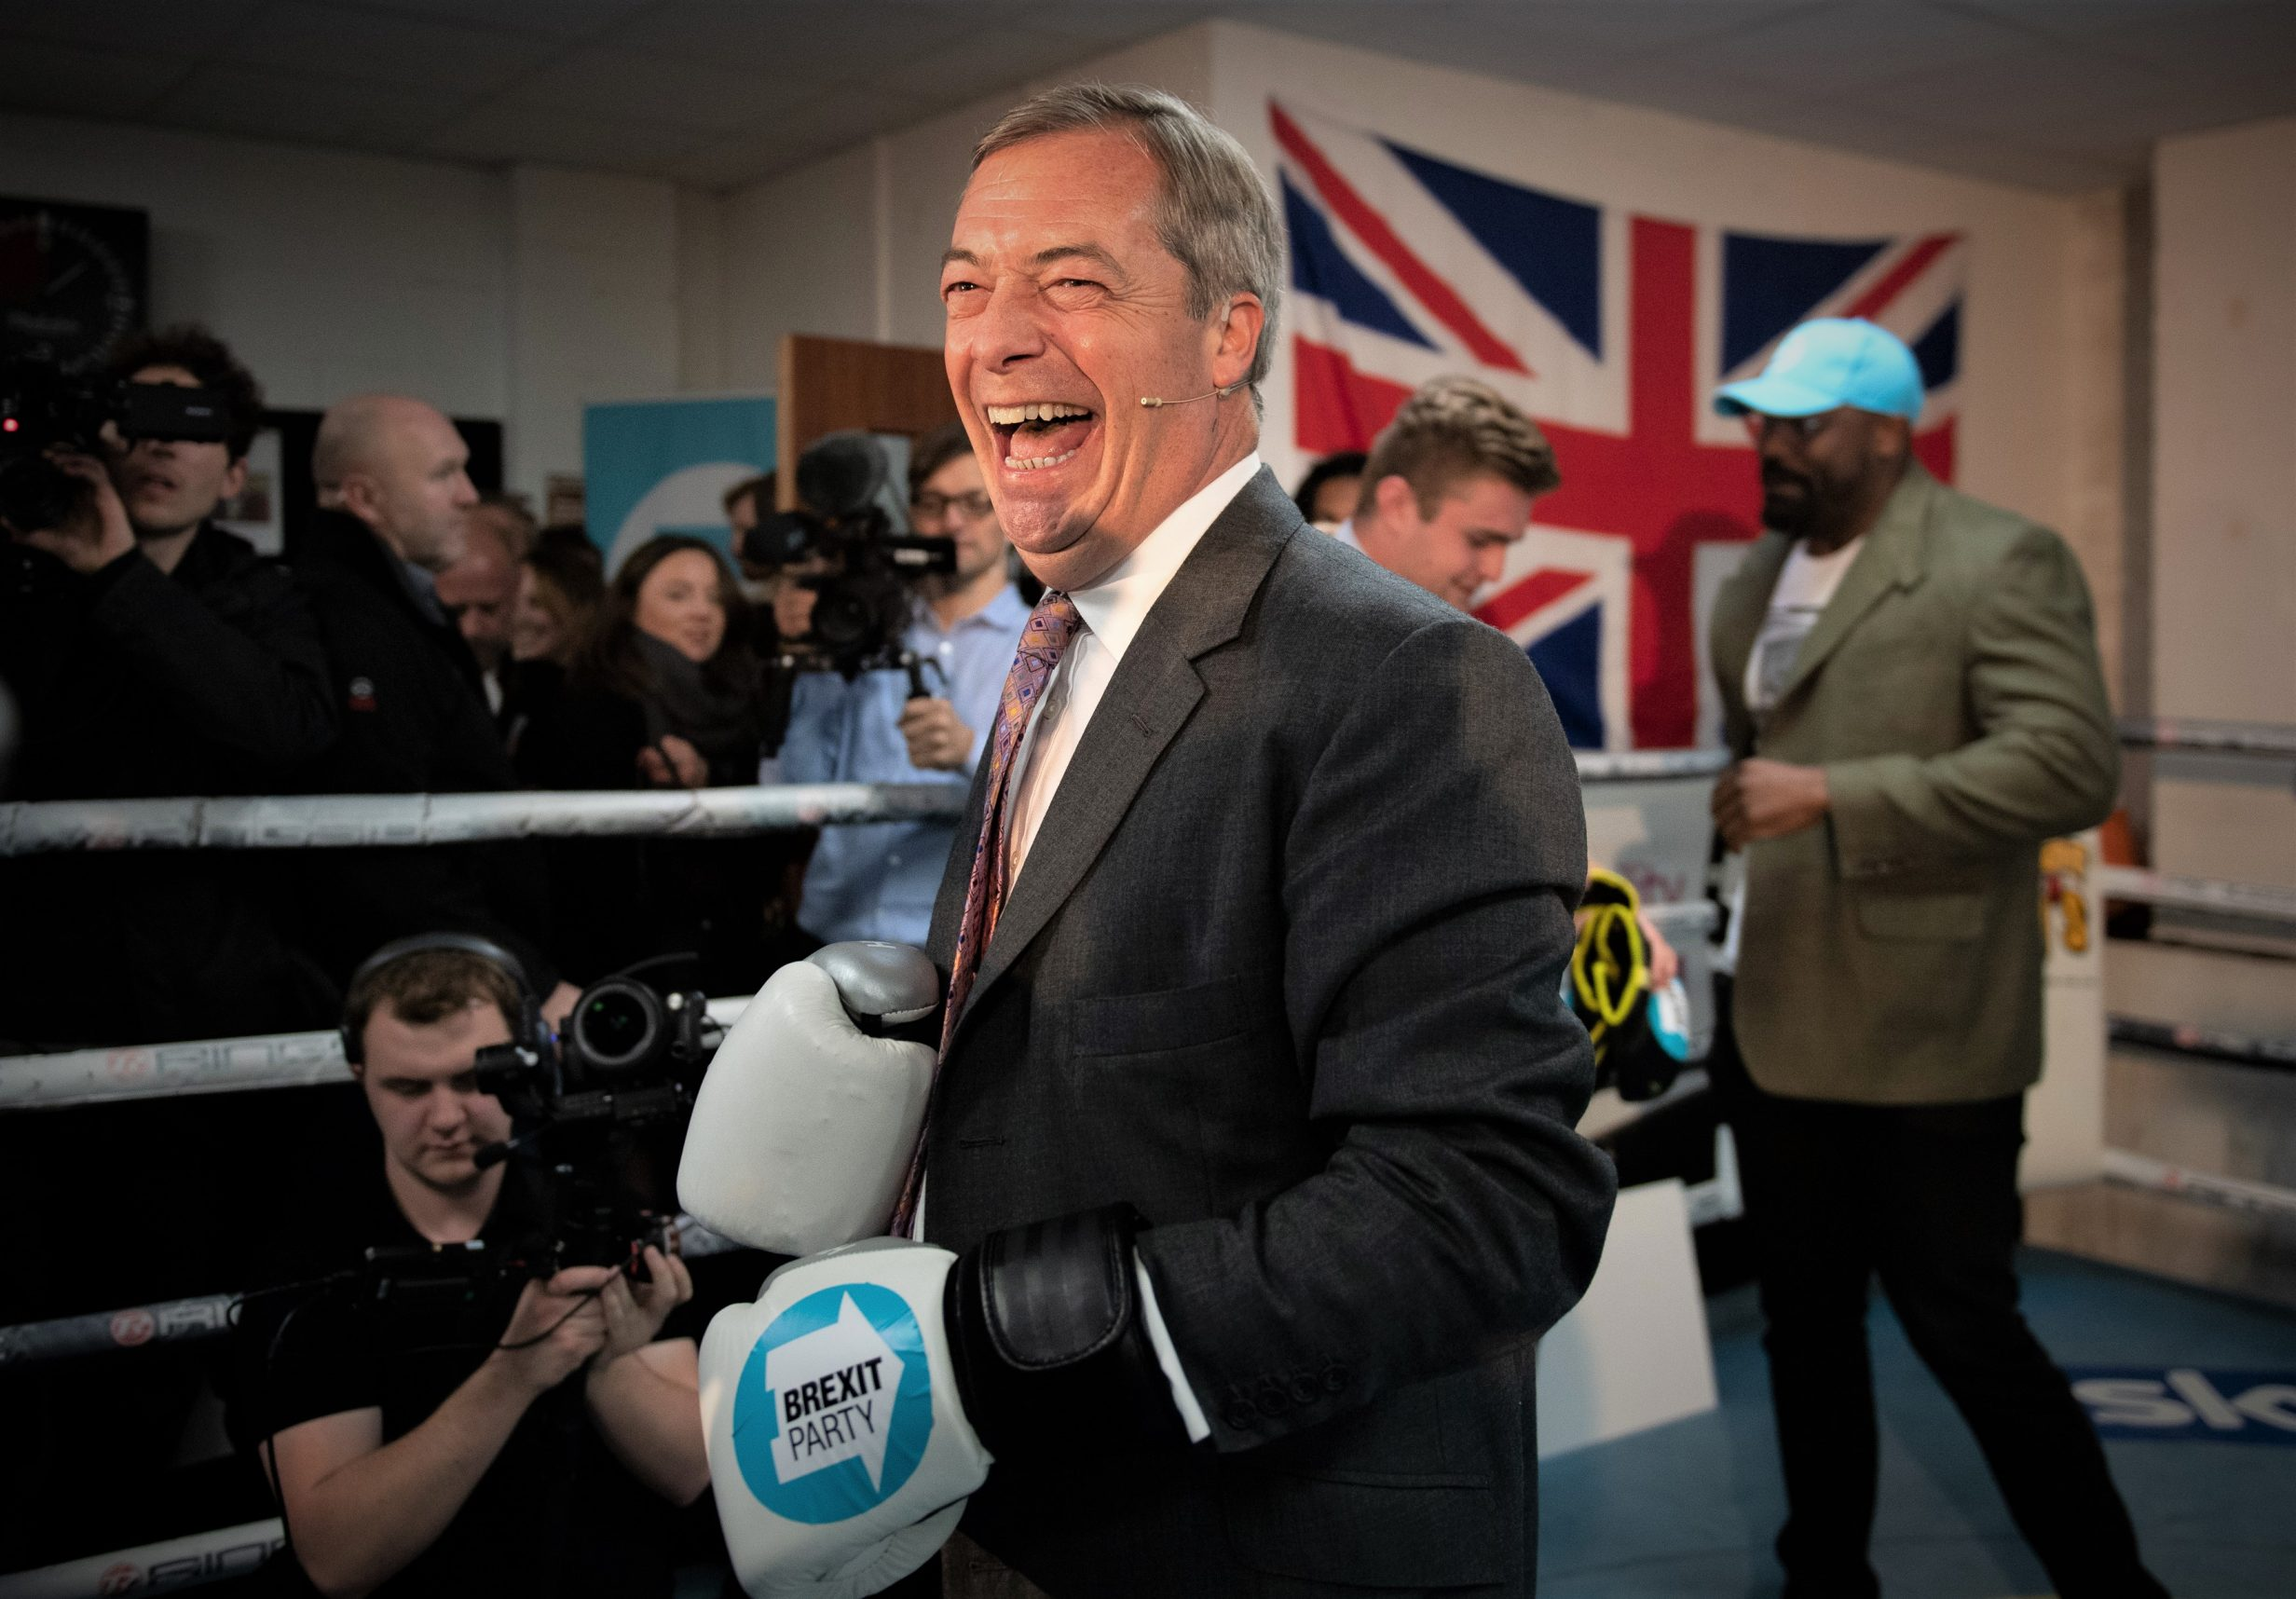 The Great Brexit Party Swindle – Byline Times